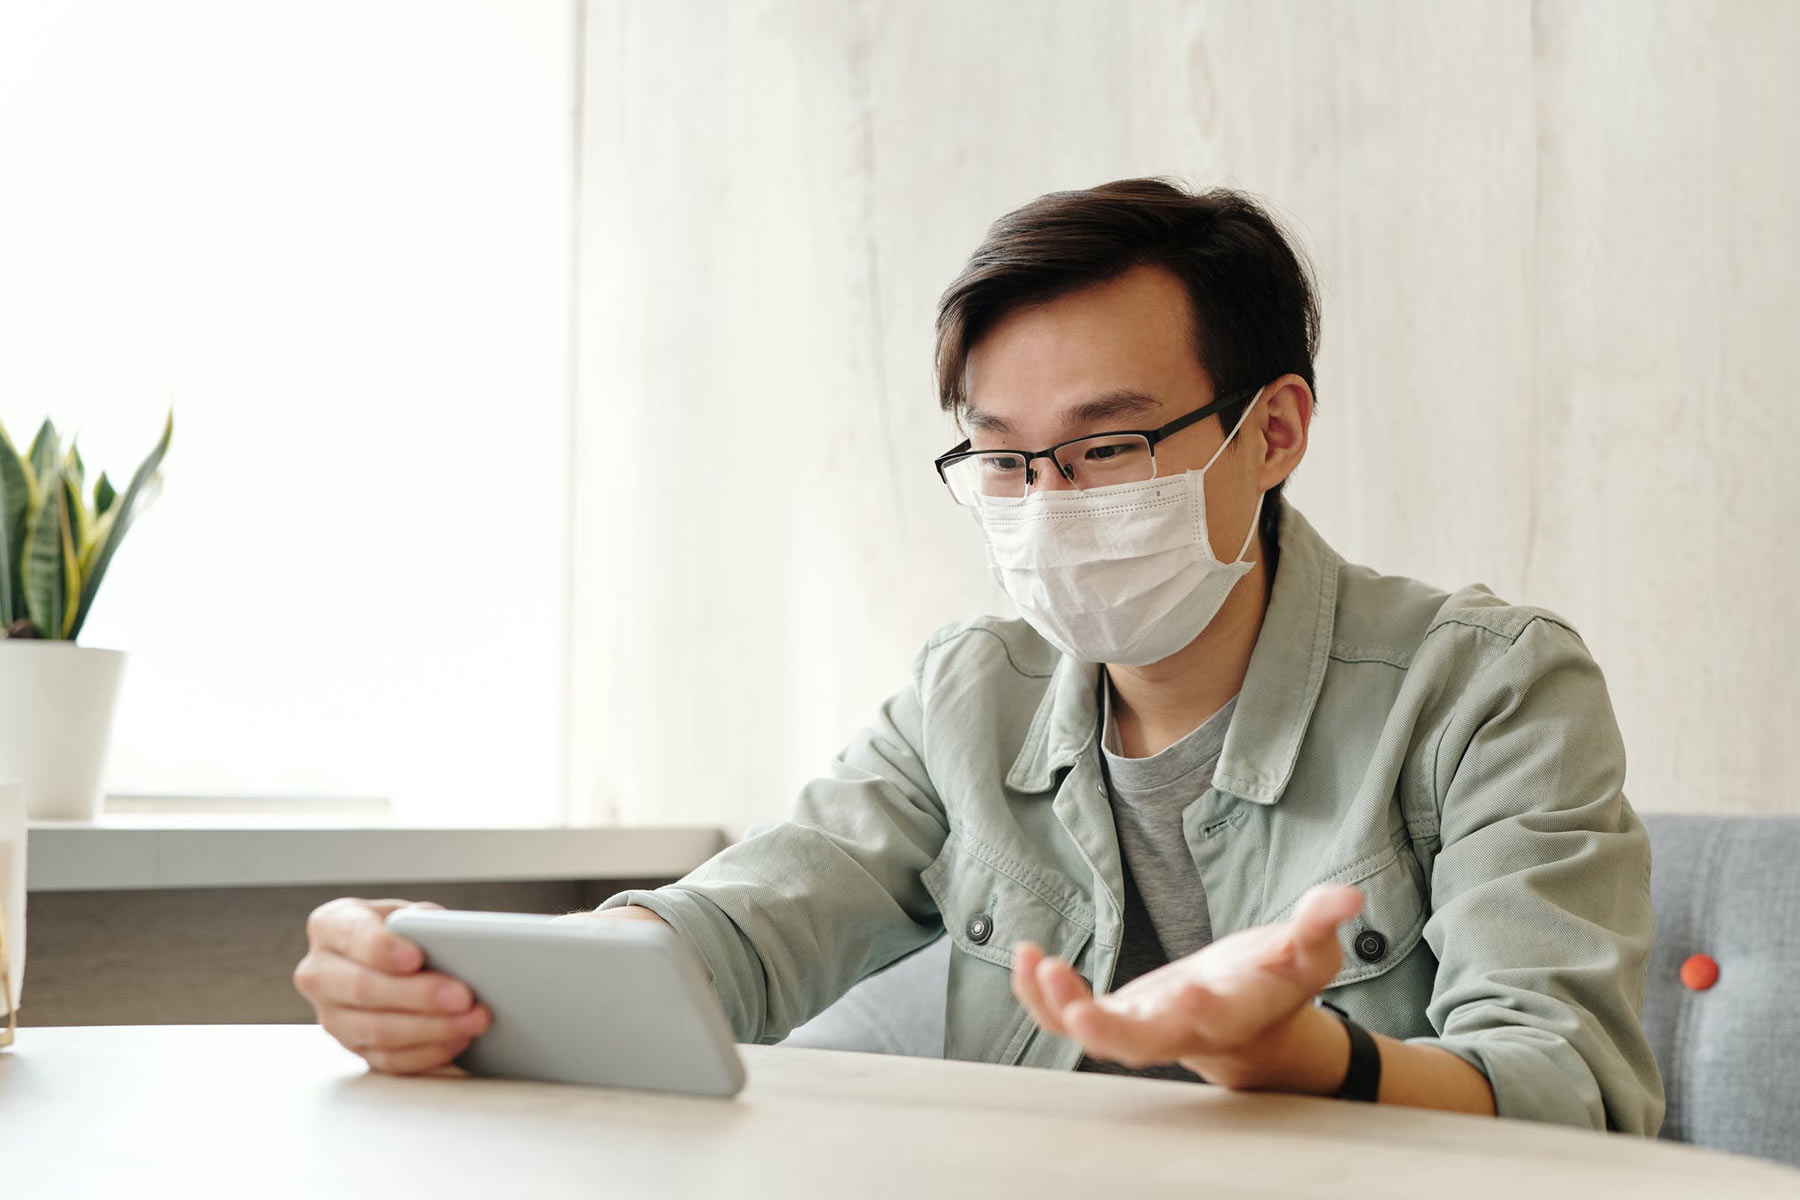 someone wearing a mask on a video call on a smartphone